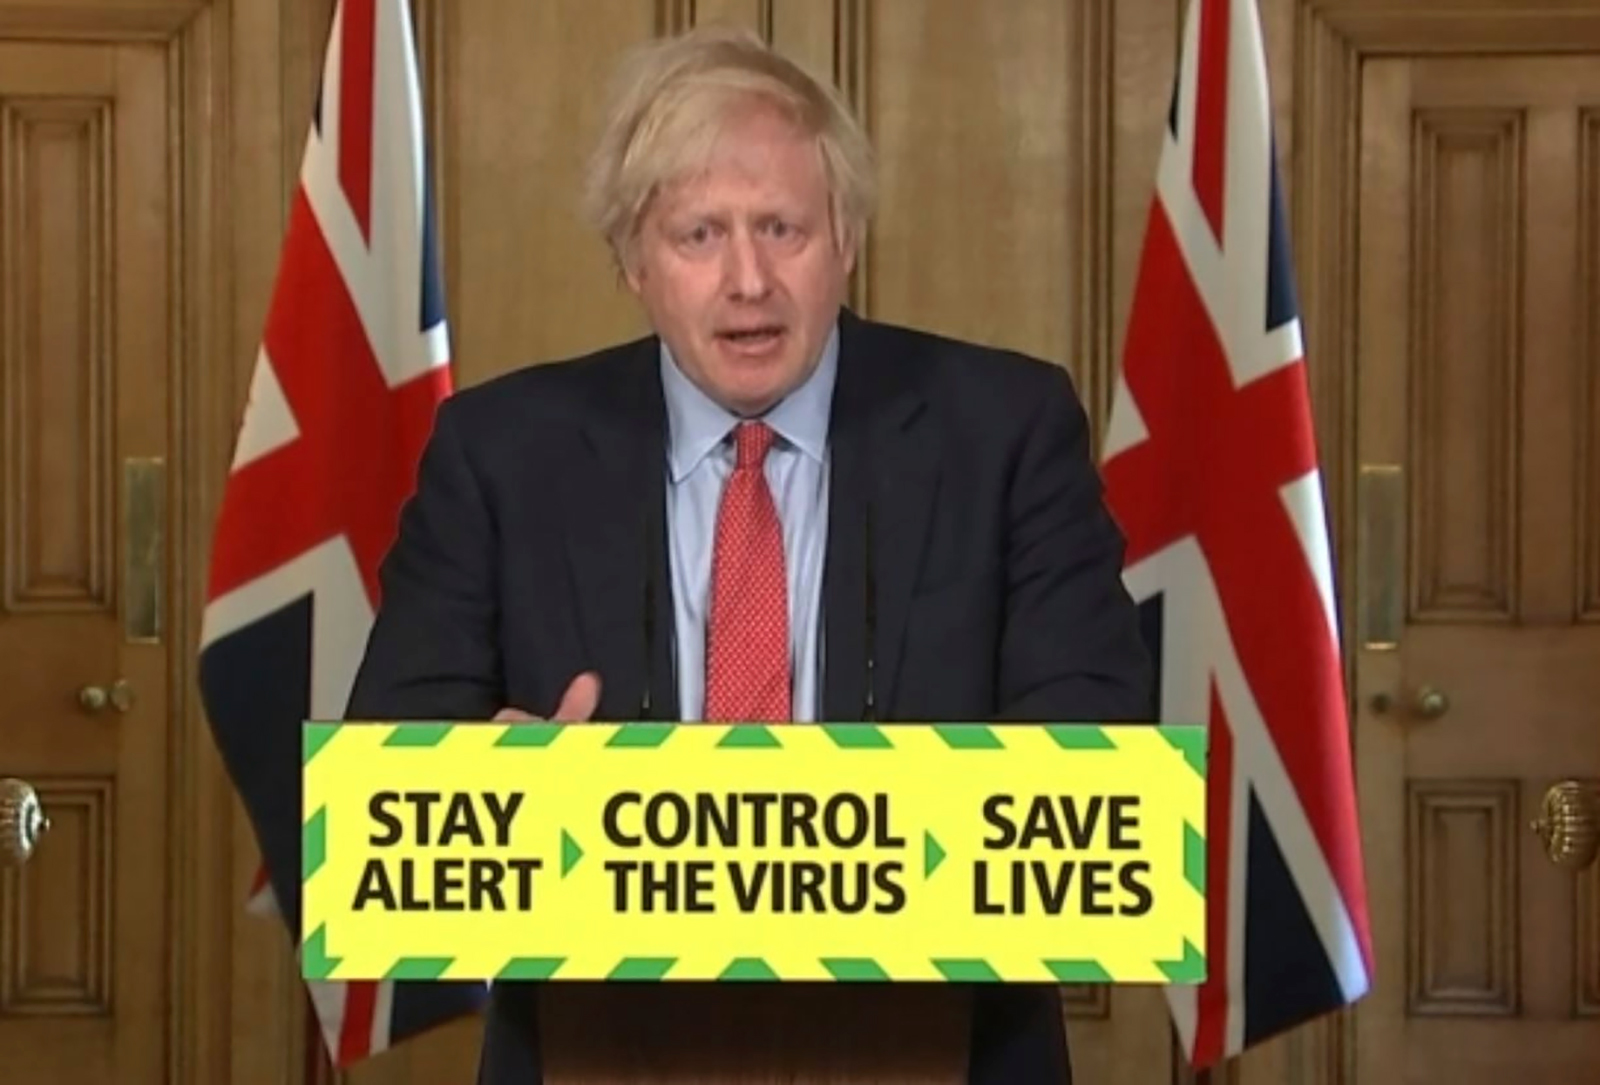 In this screengrab from video, UK Prime Minister Boris Johnson speaks during a media briefing in Downing Street, London, on Thursday, May 28.